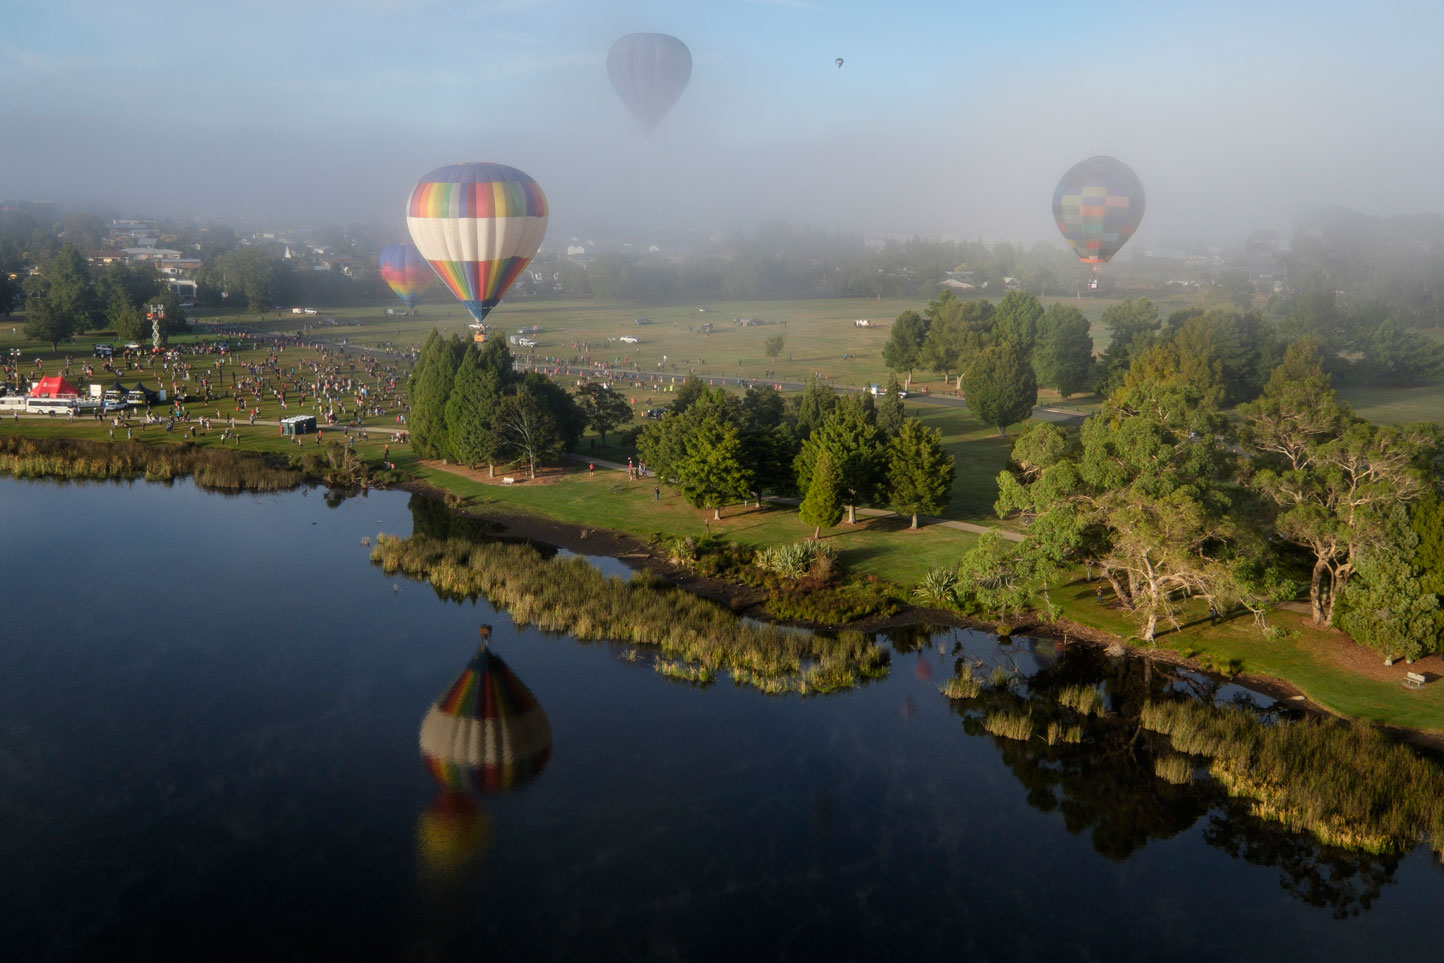 Balloons floating over a lake on a misty morning at Hamilton's Balloons Over Waikato, New Zealand